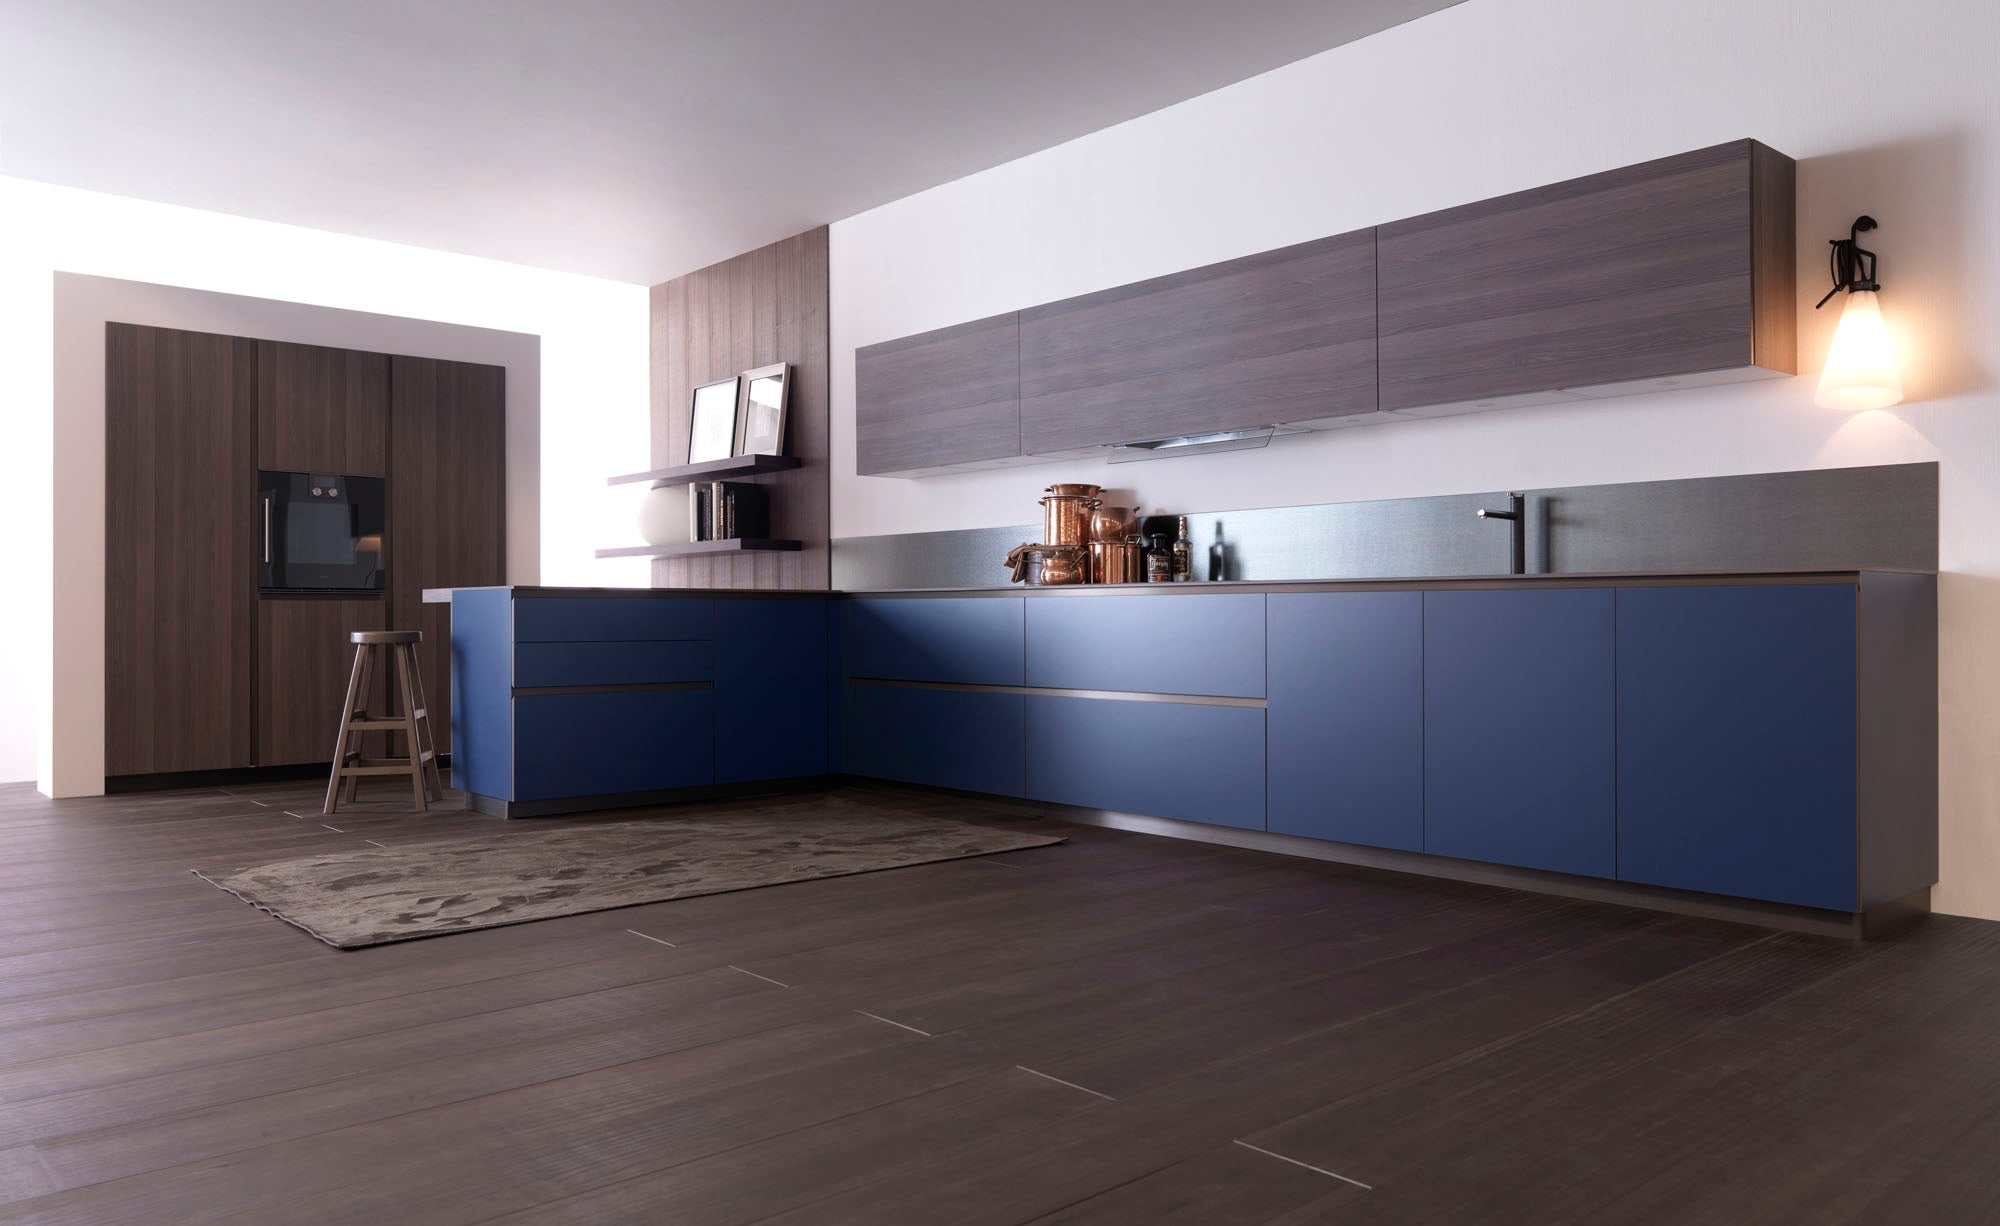 Effeti E0 Range - Buy online from Abitalia South Coast